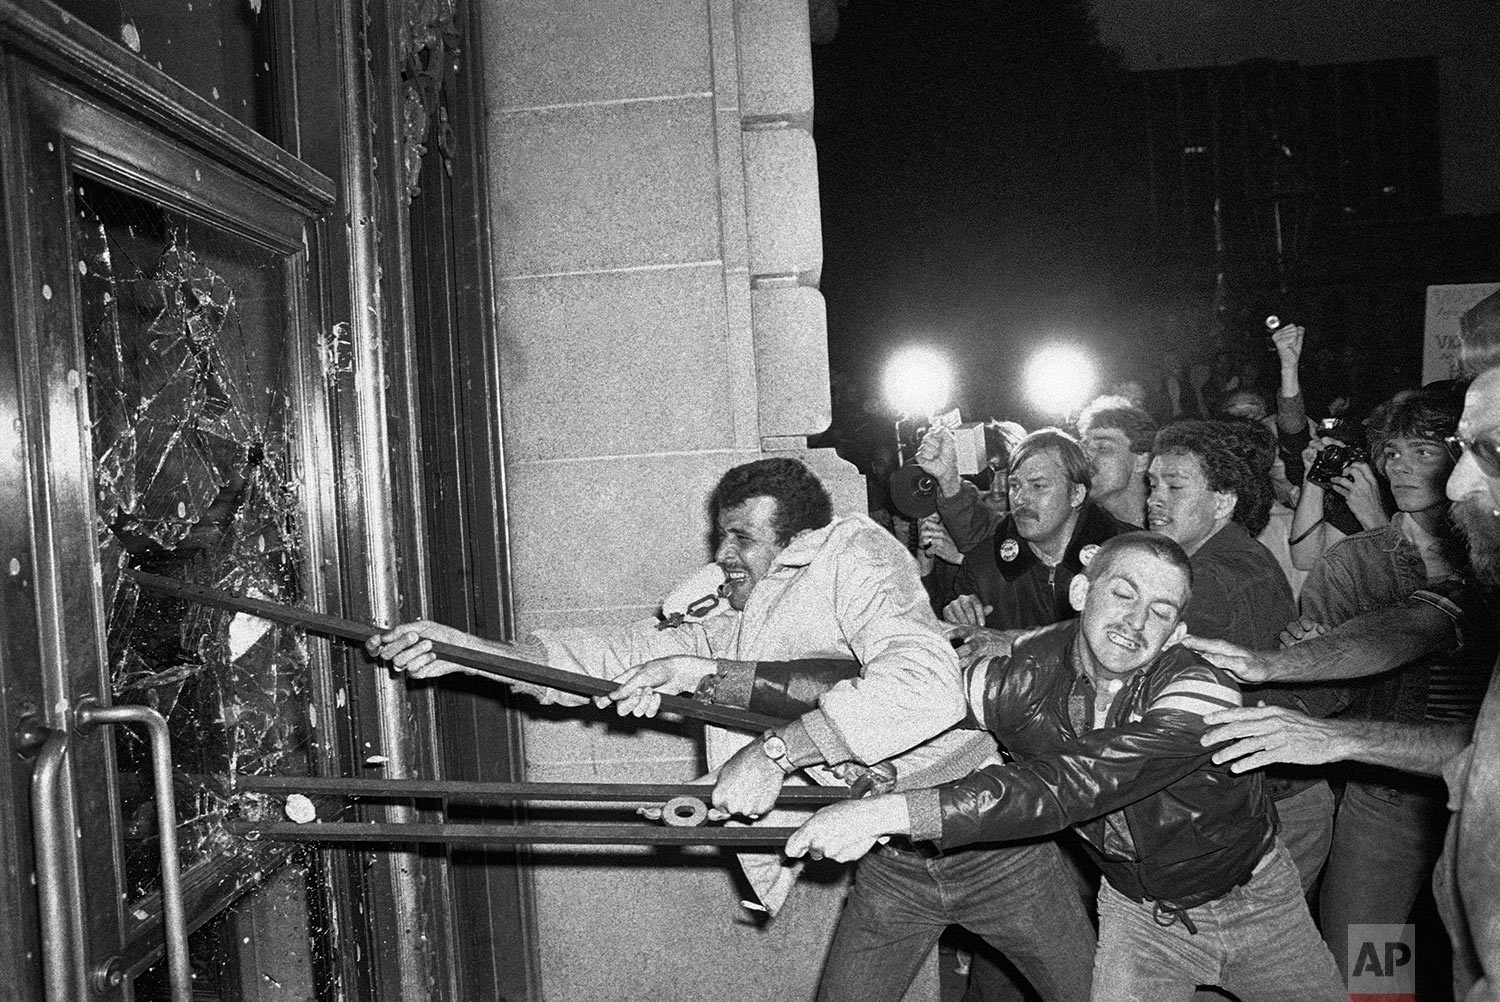 In this May 22, 1979 file photo, demonstrators smash glass out of the front doors of the San Francisco City Hall. Thousands marched from the city's gay community to city hall, protesting the voluntary manslaughter conviction of Dan White in the fatal shootings of Mayor George Moscone and city supervisor and gay rights activist Harvey Milk. (AP Photo/Paul Sakuma)